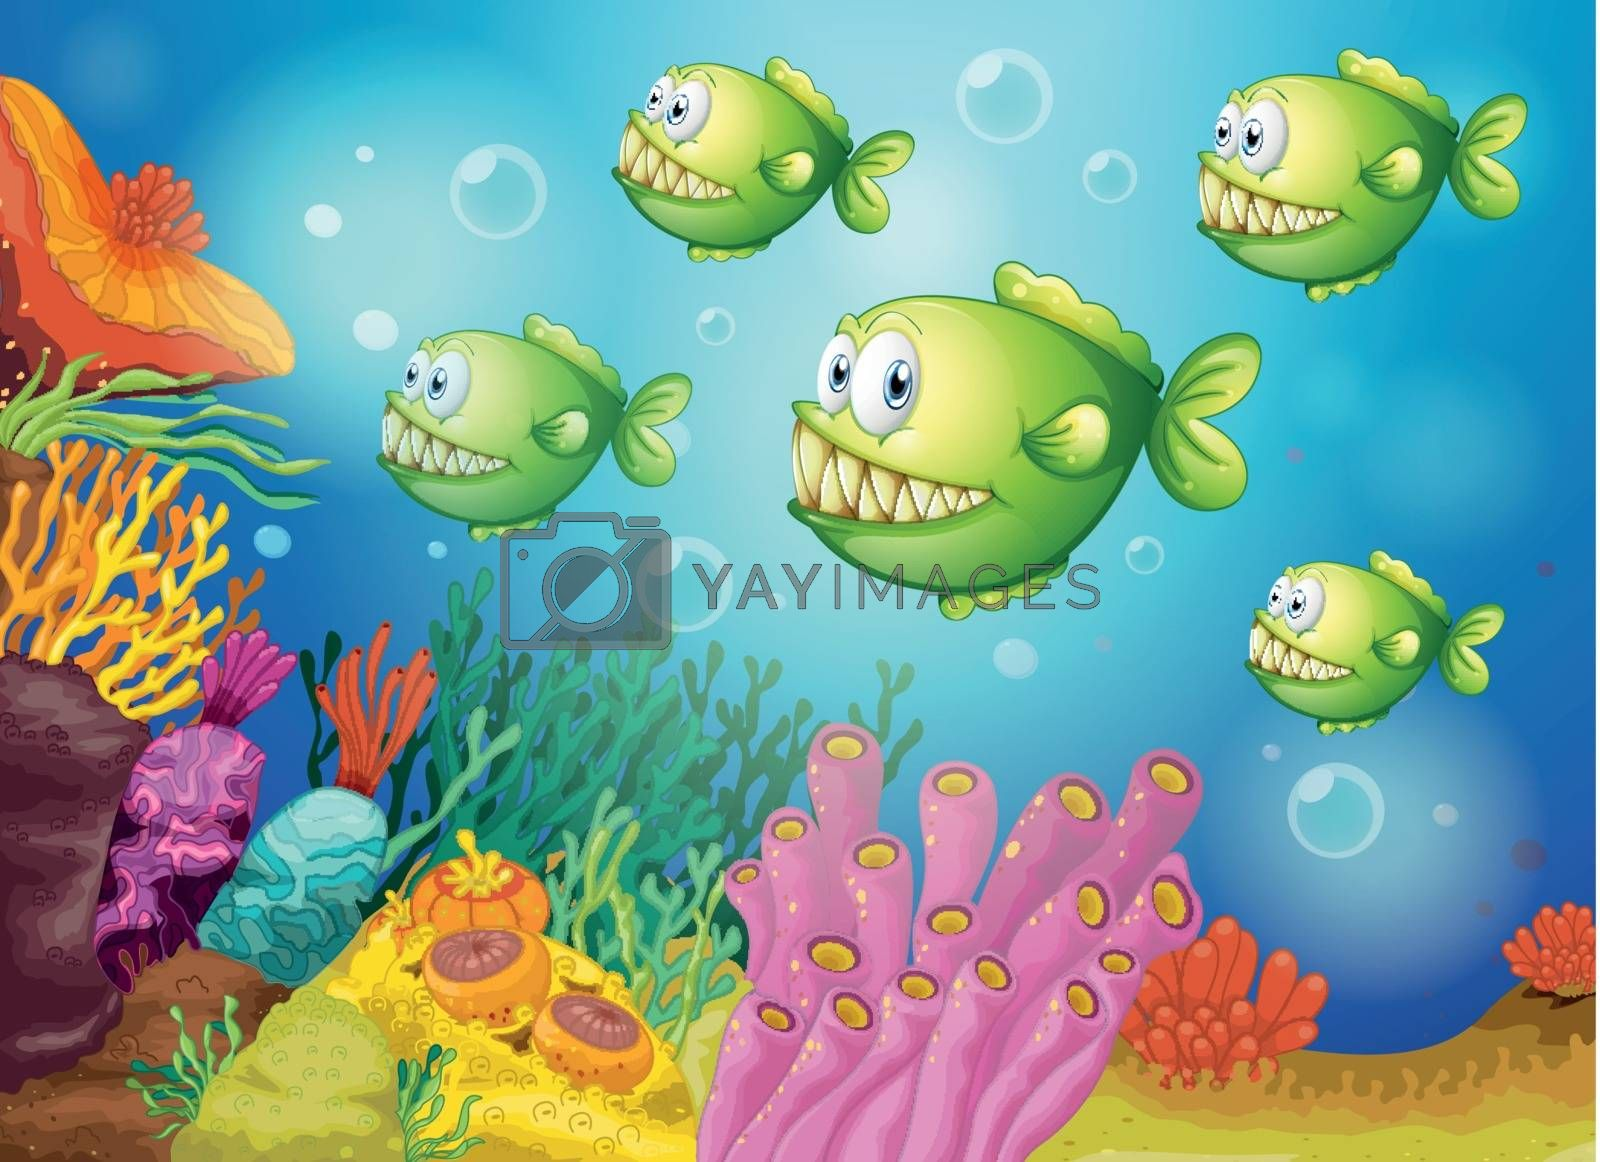 Illustration of a group of green piranhas under the sea